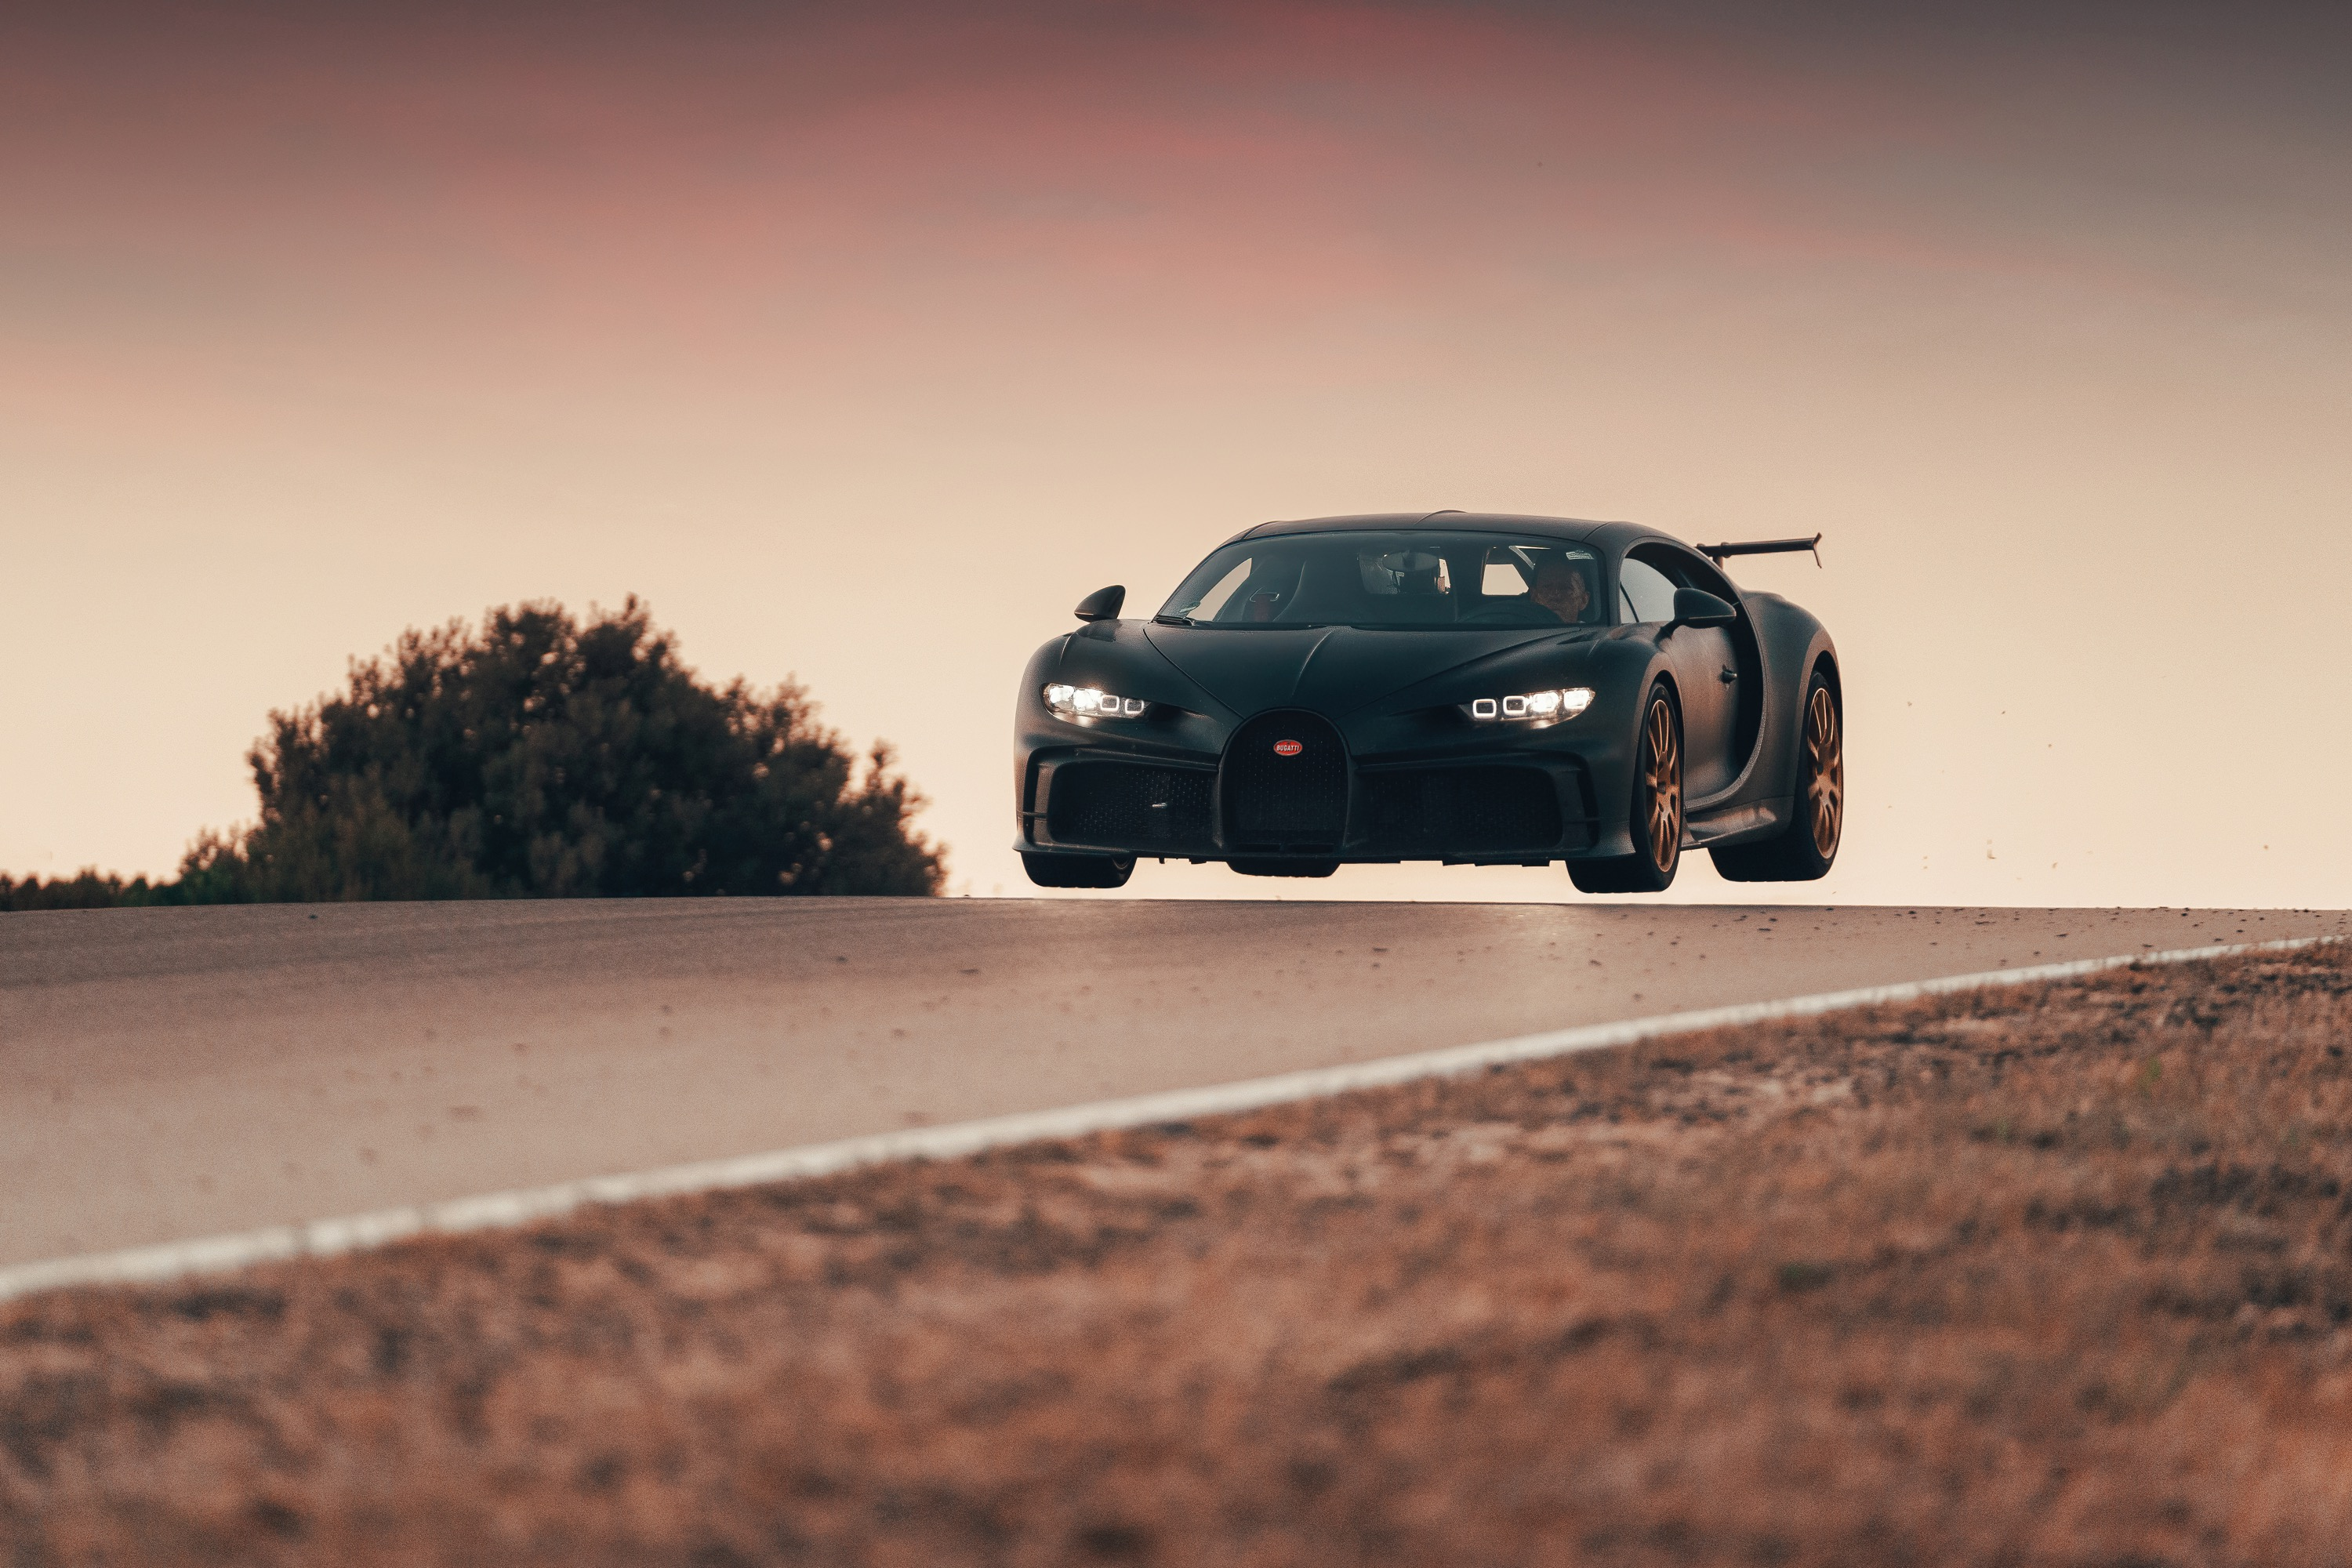 We did not get any air during our hour with the Chiron Pur Sport.